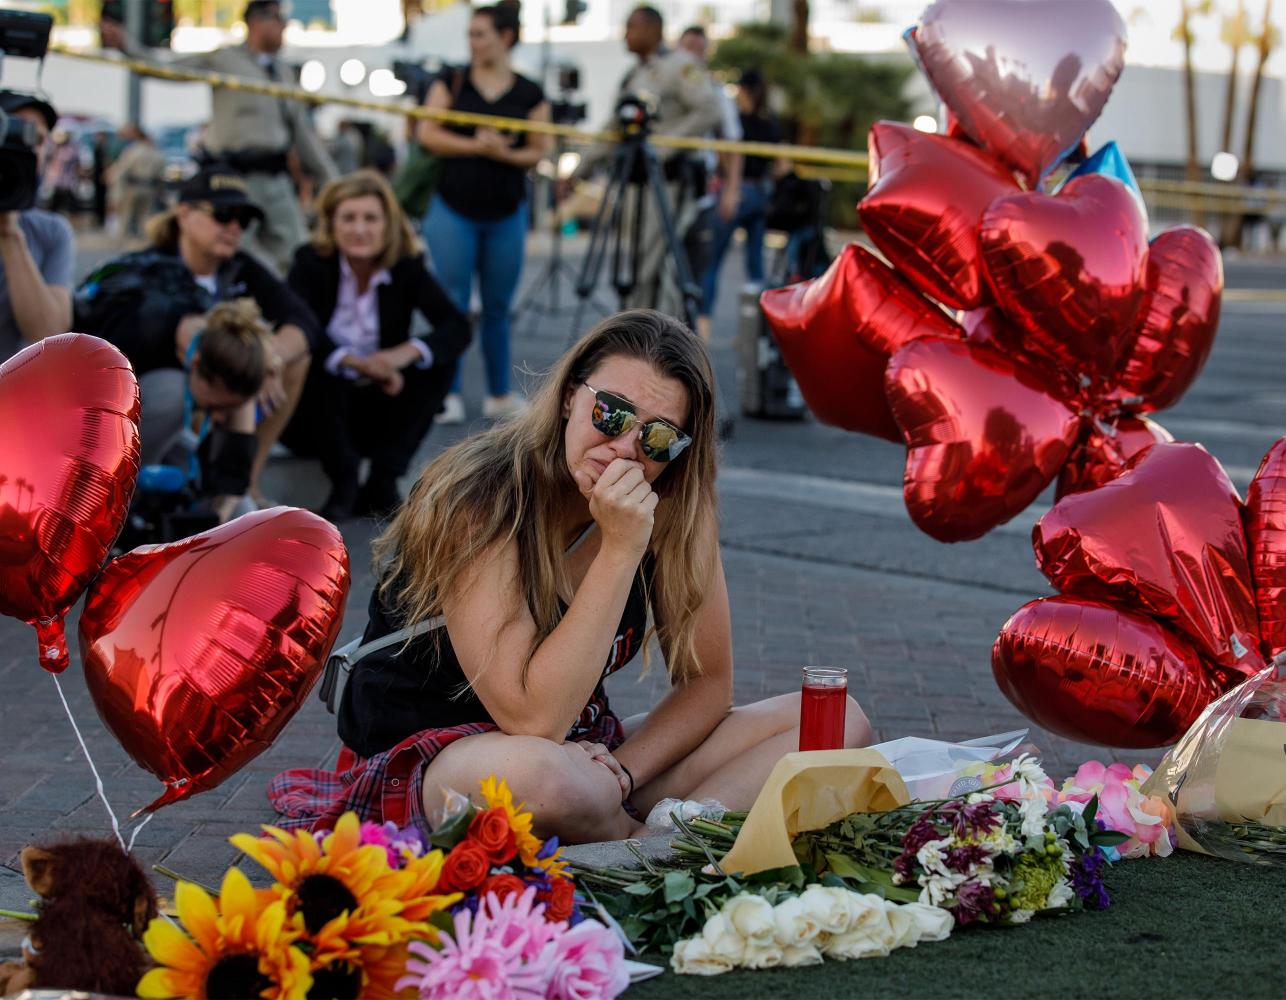 In response to the deadly shooting in Las Vegas on Sunday, opinion columnist Abbi Cobb calls for America to take a deeper look at the causes of mass murder.